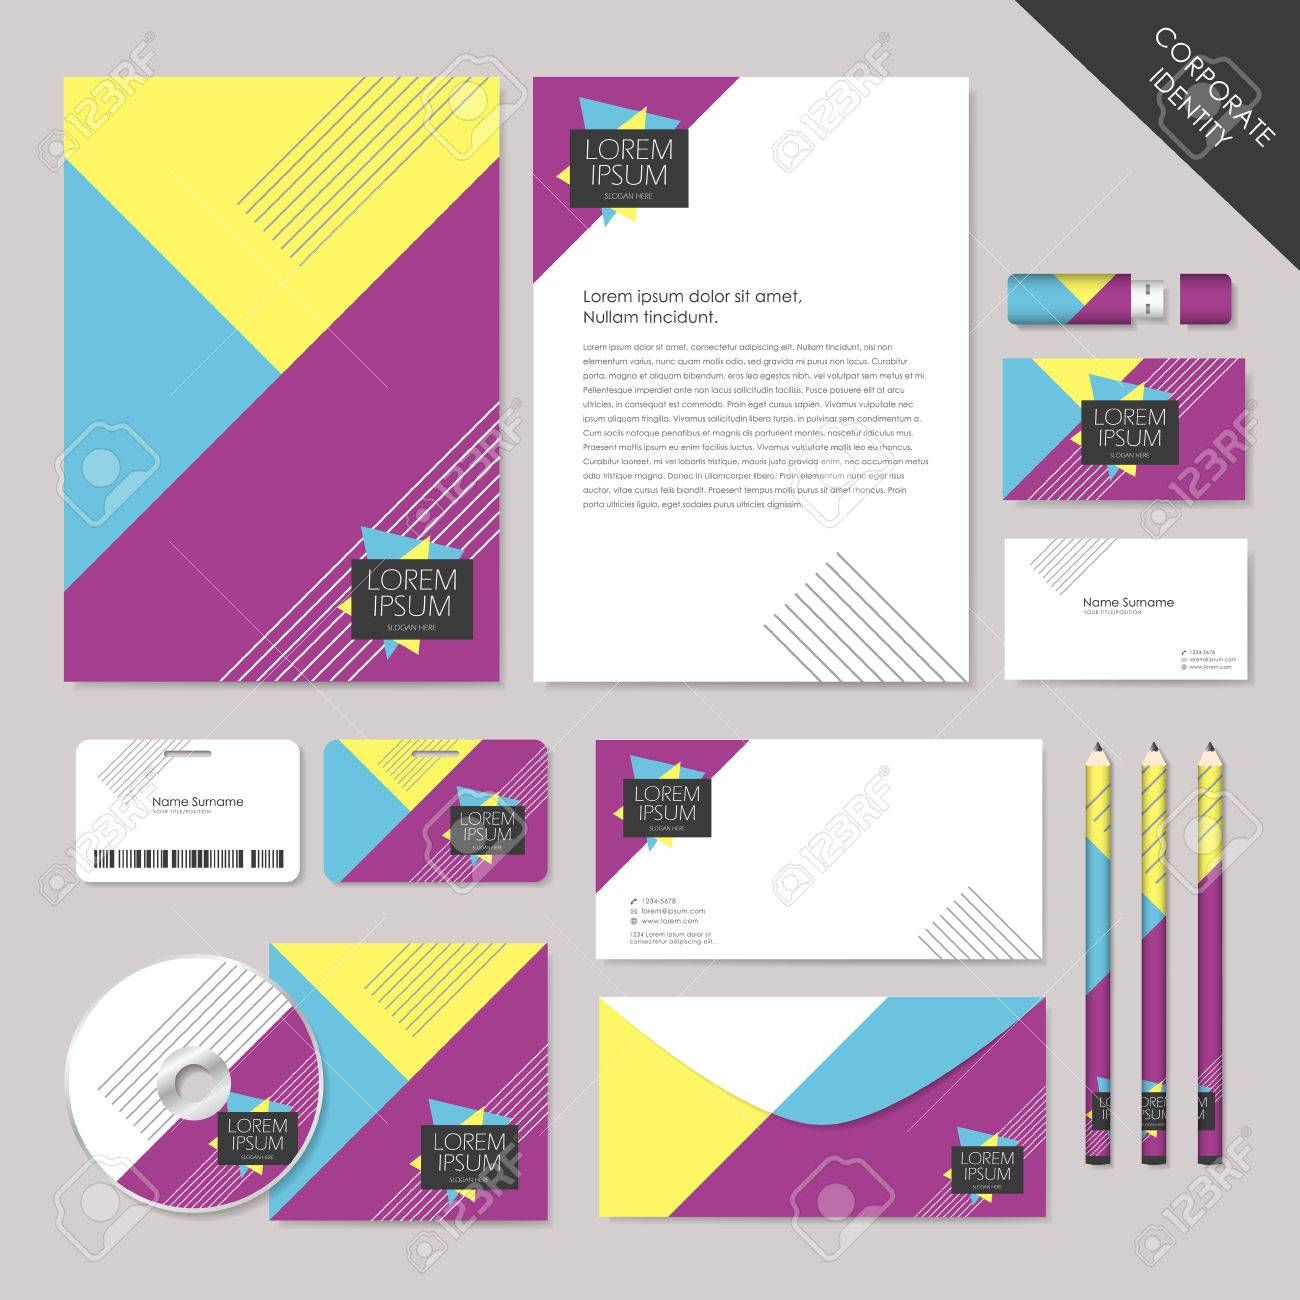 Corporate Graphic Design Abstract Corporate Identity Set Graphic Design Of Geometry Colorful